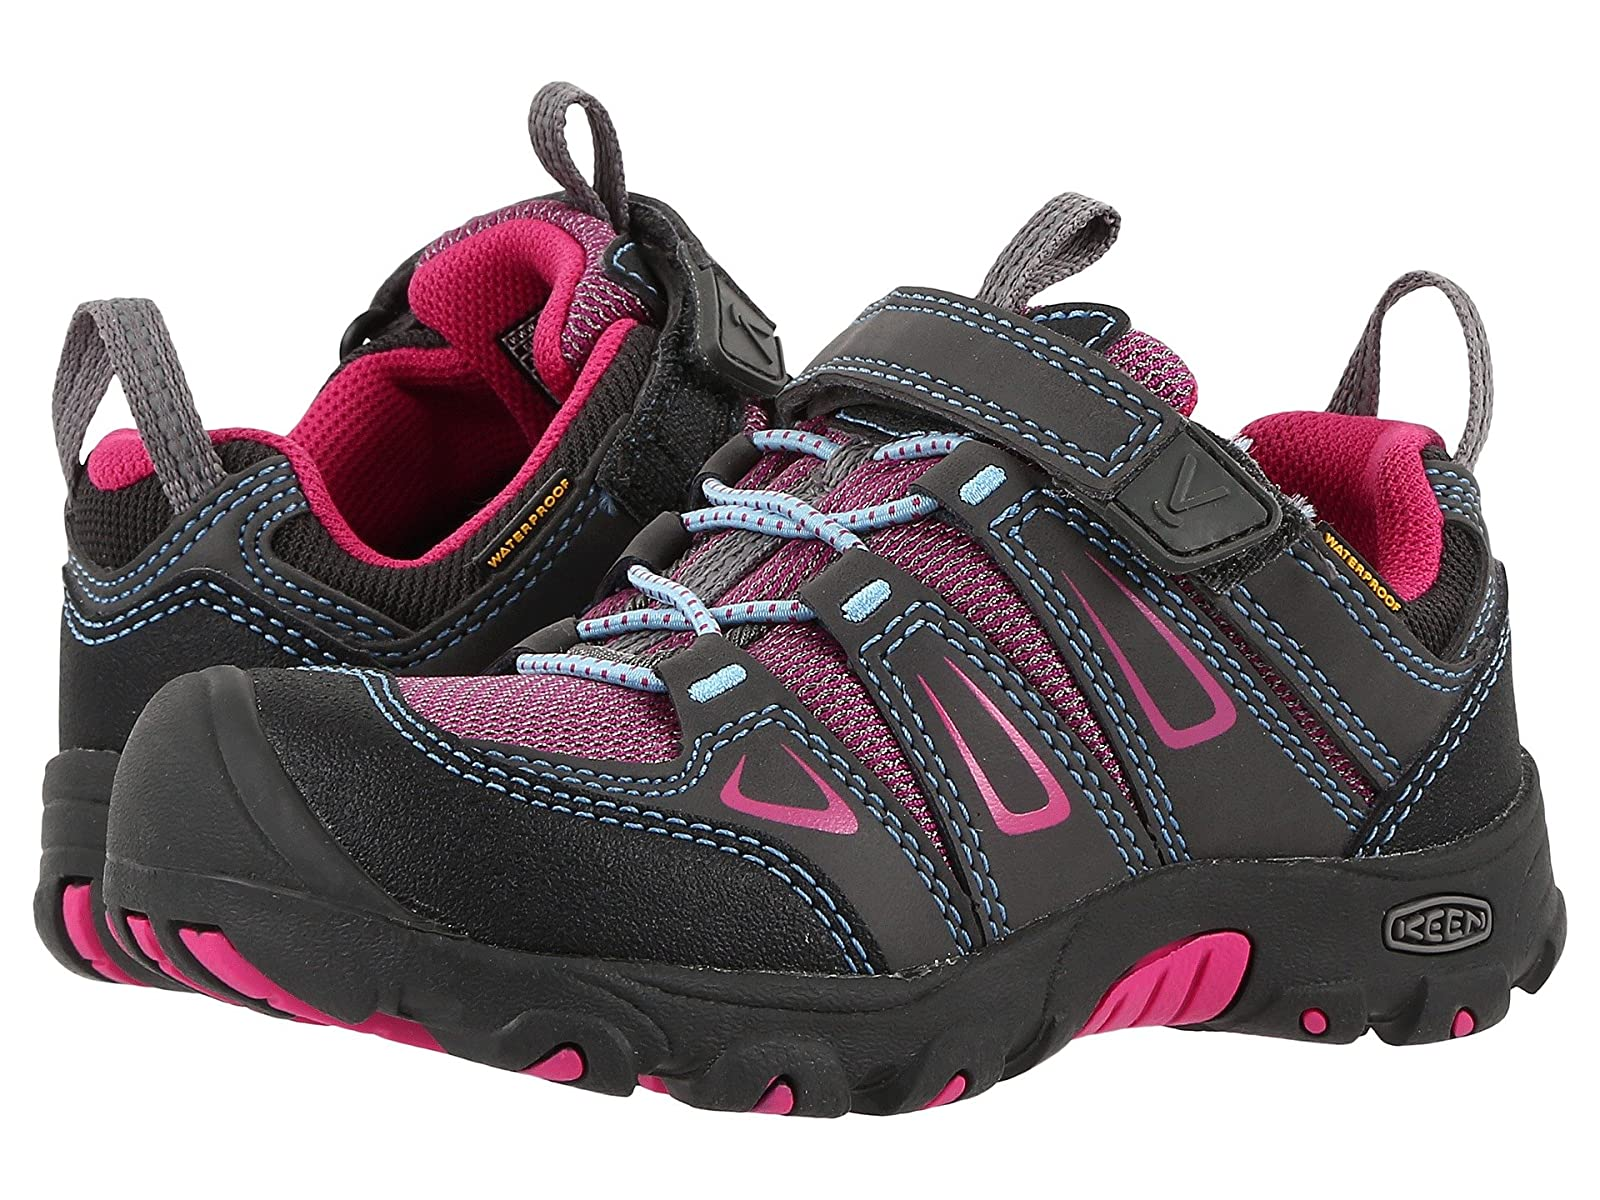 Keen Kids Oakridge Low WP (Toddler/Little Kid)Atmospheric grades have affordable shoes